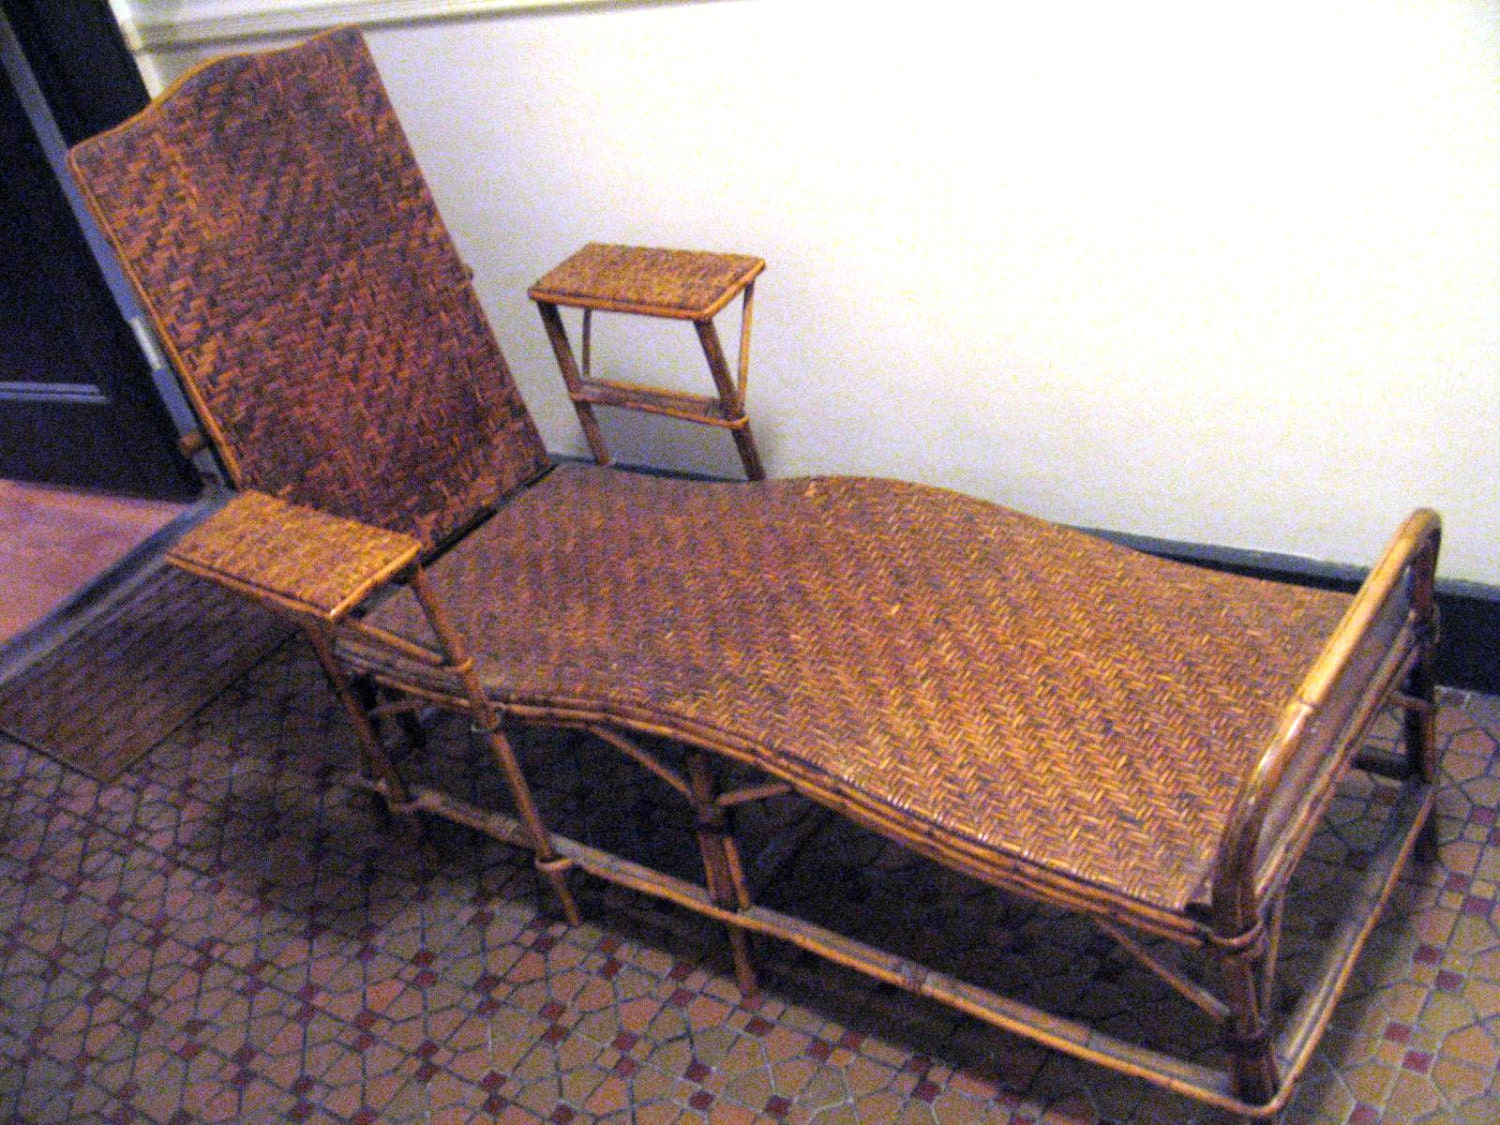 Antique french bamboo wicker chaise lounge local pick up nyc for Antique french chaise lounge